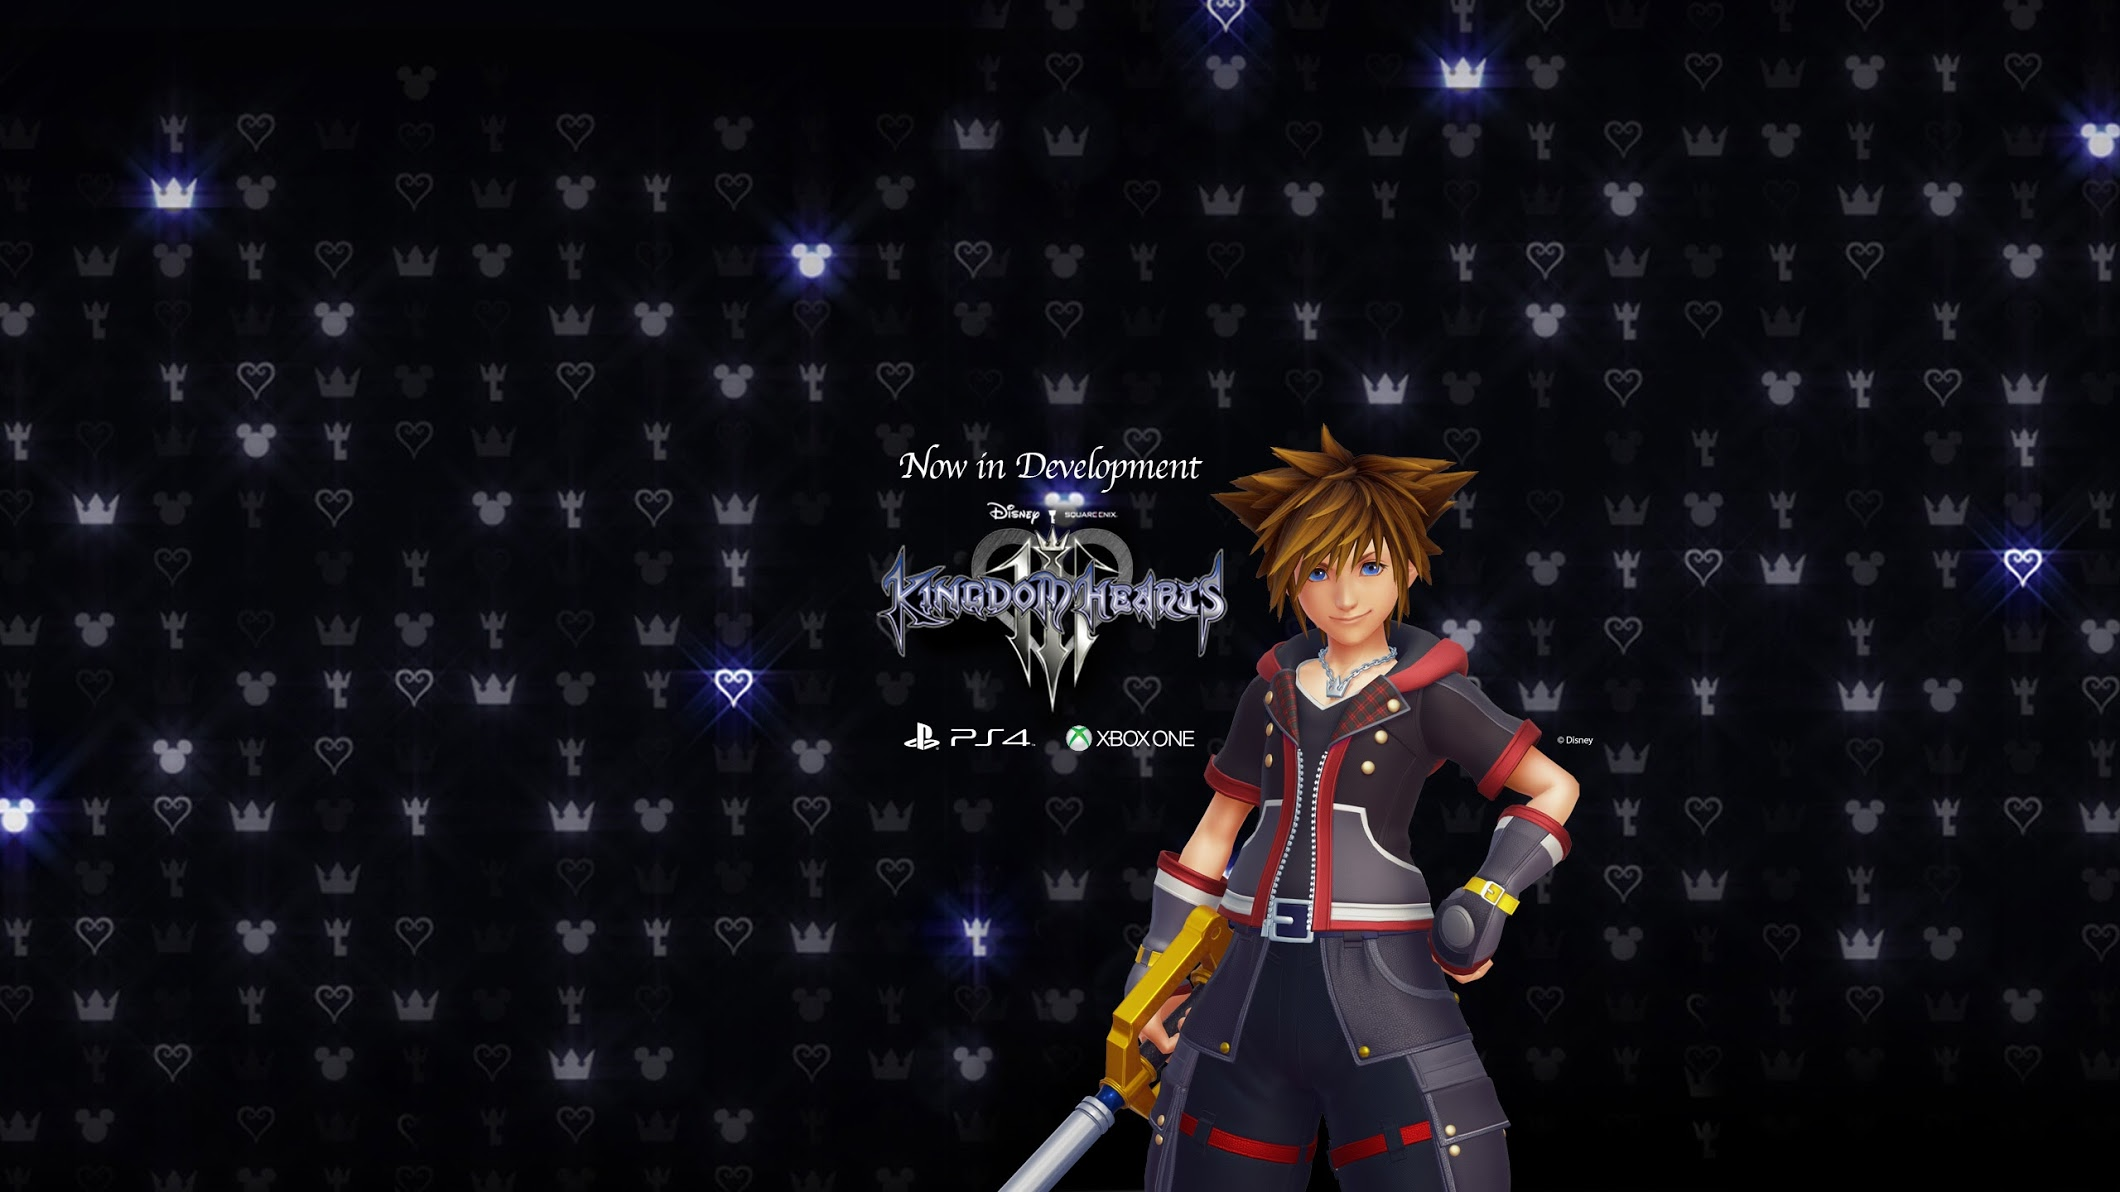 Kingdom Hearts 3 Wallpapers